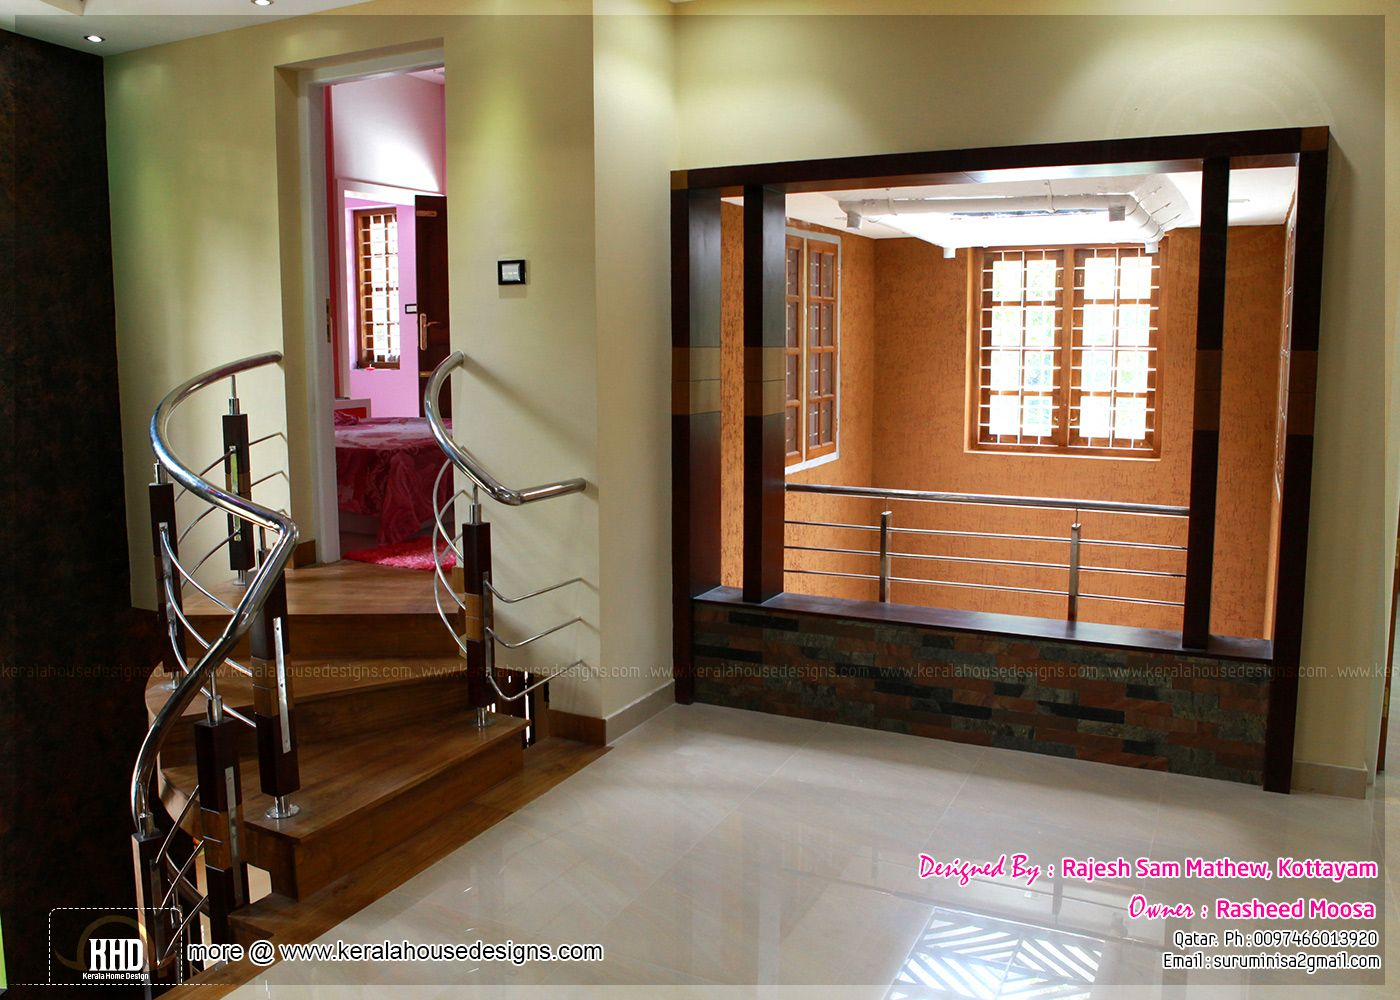 Interior Design For Small Houses In Kerala Small House Interior Design Interior Design Jobs Small House Model